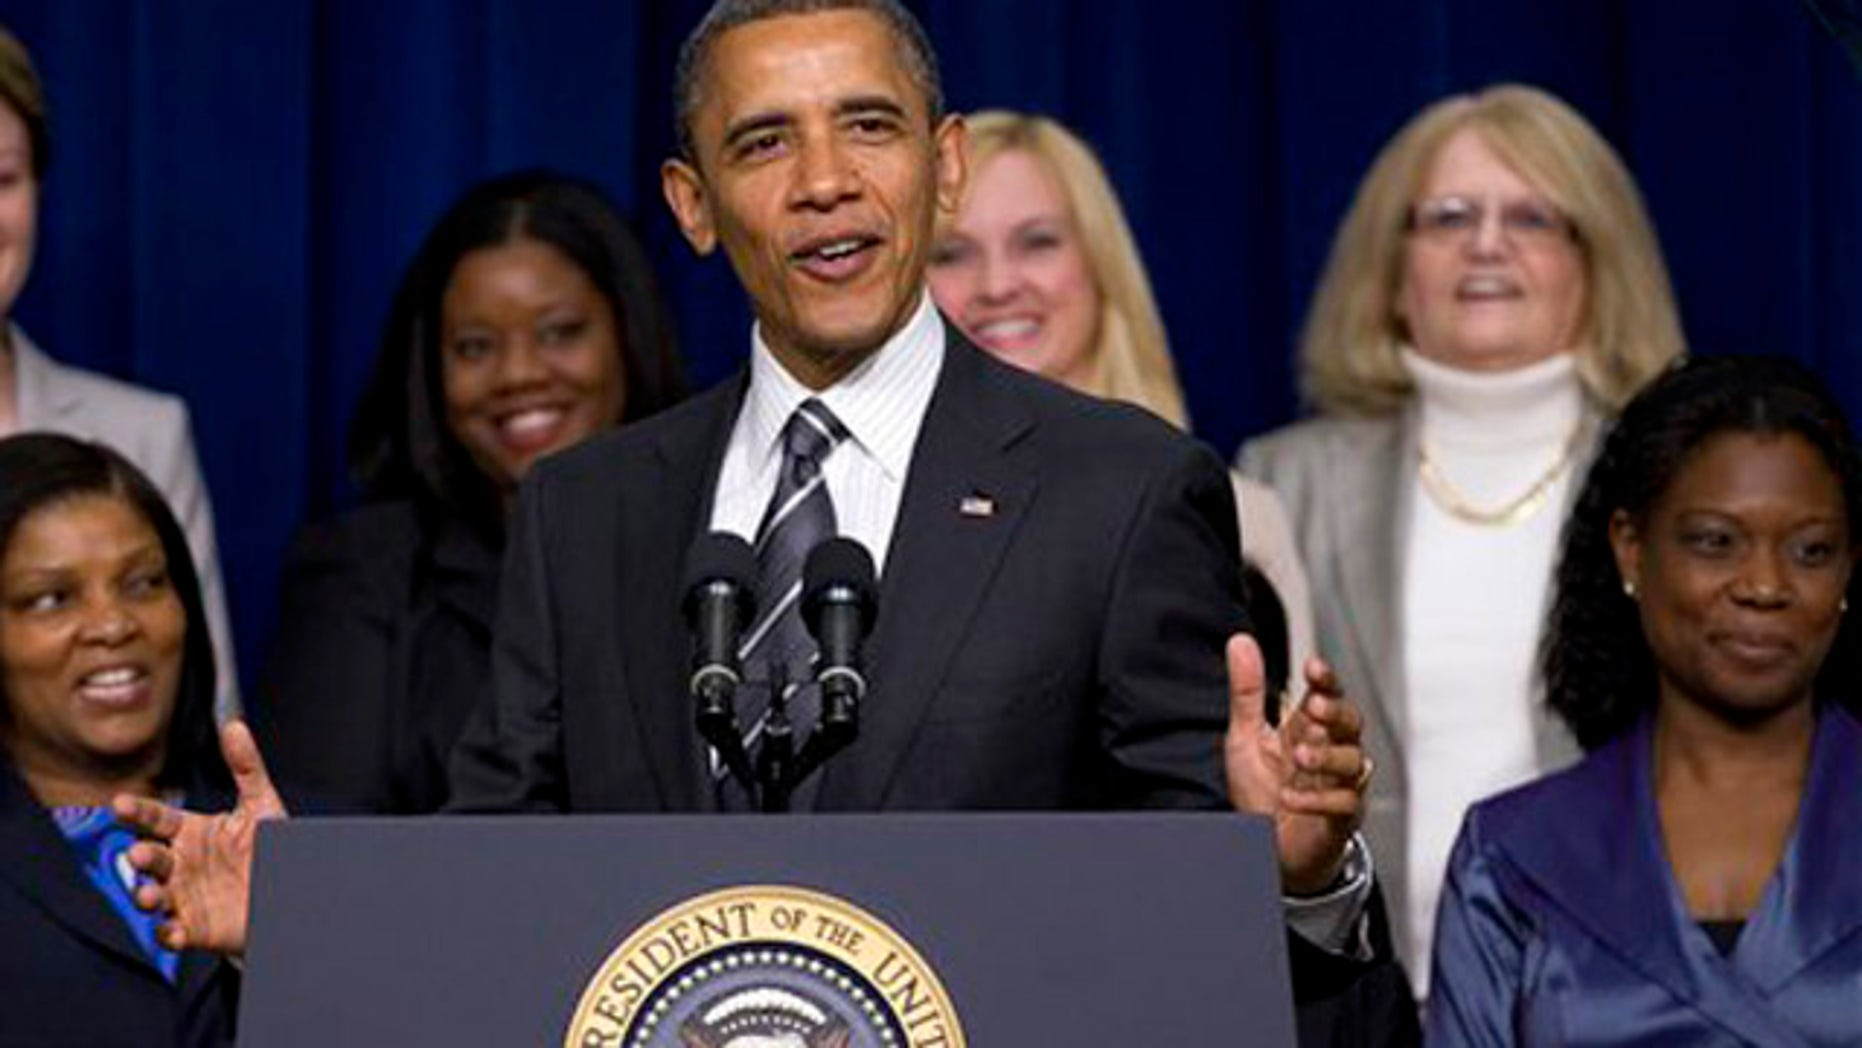 President Barack Obama speaks at the White House Forum on Women and the Economy. April 6, 2012,